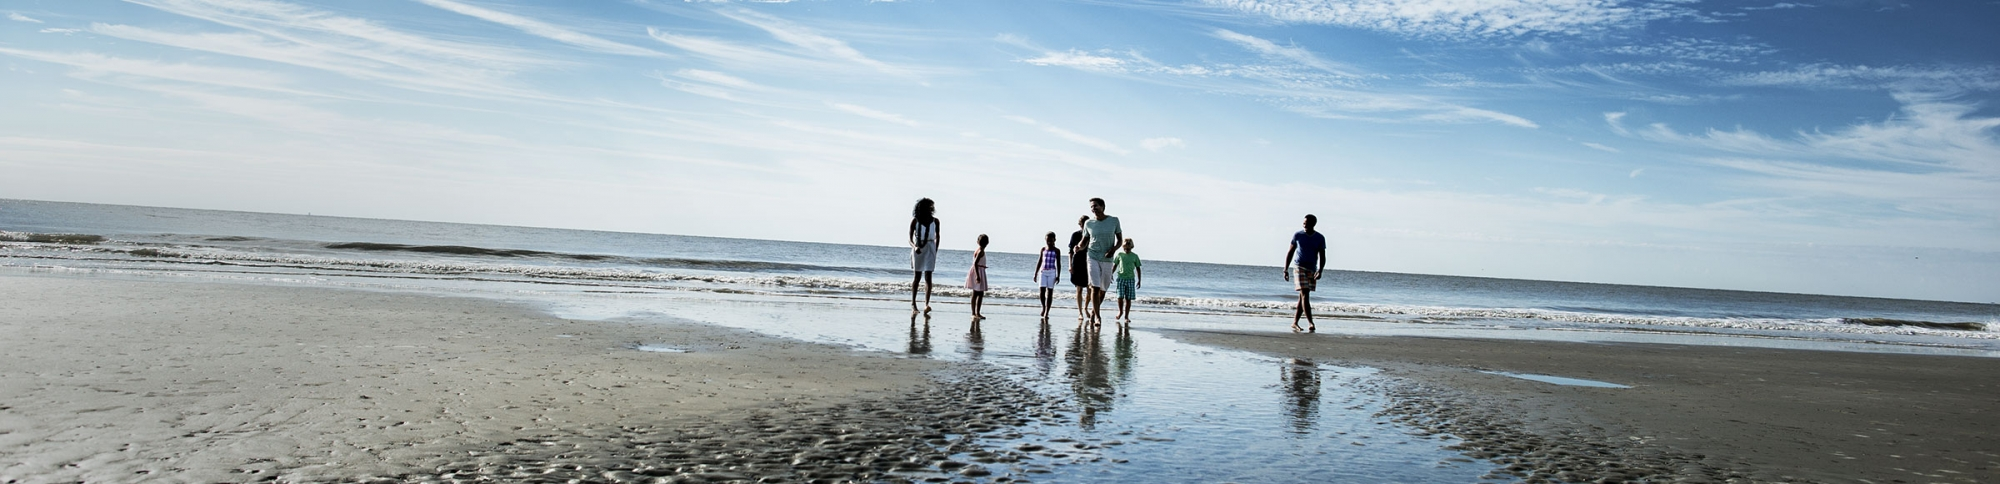 Children and adults strolling along the beach